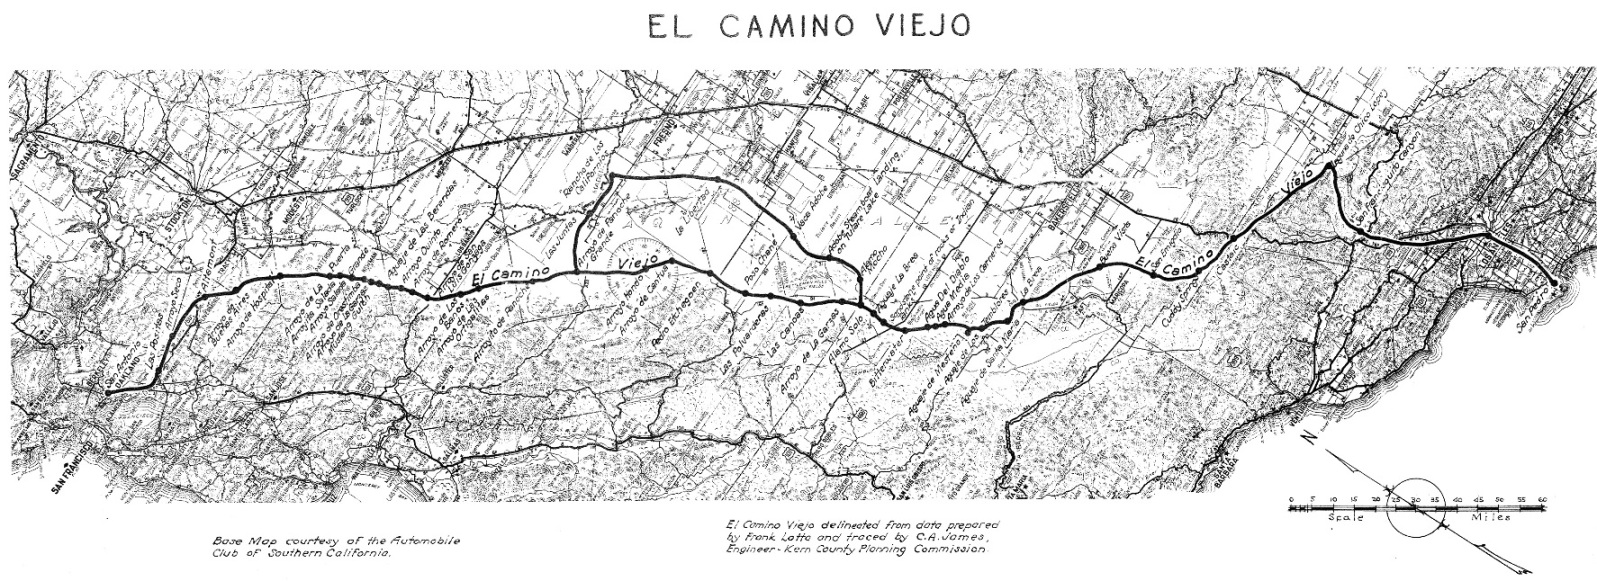 The Old Road Camino California Map on